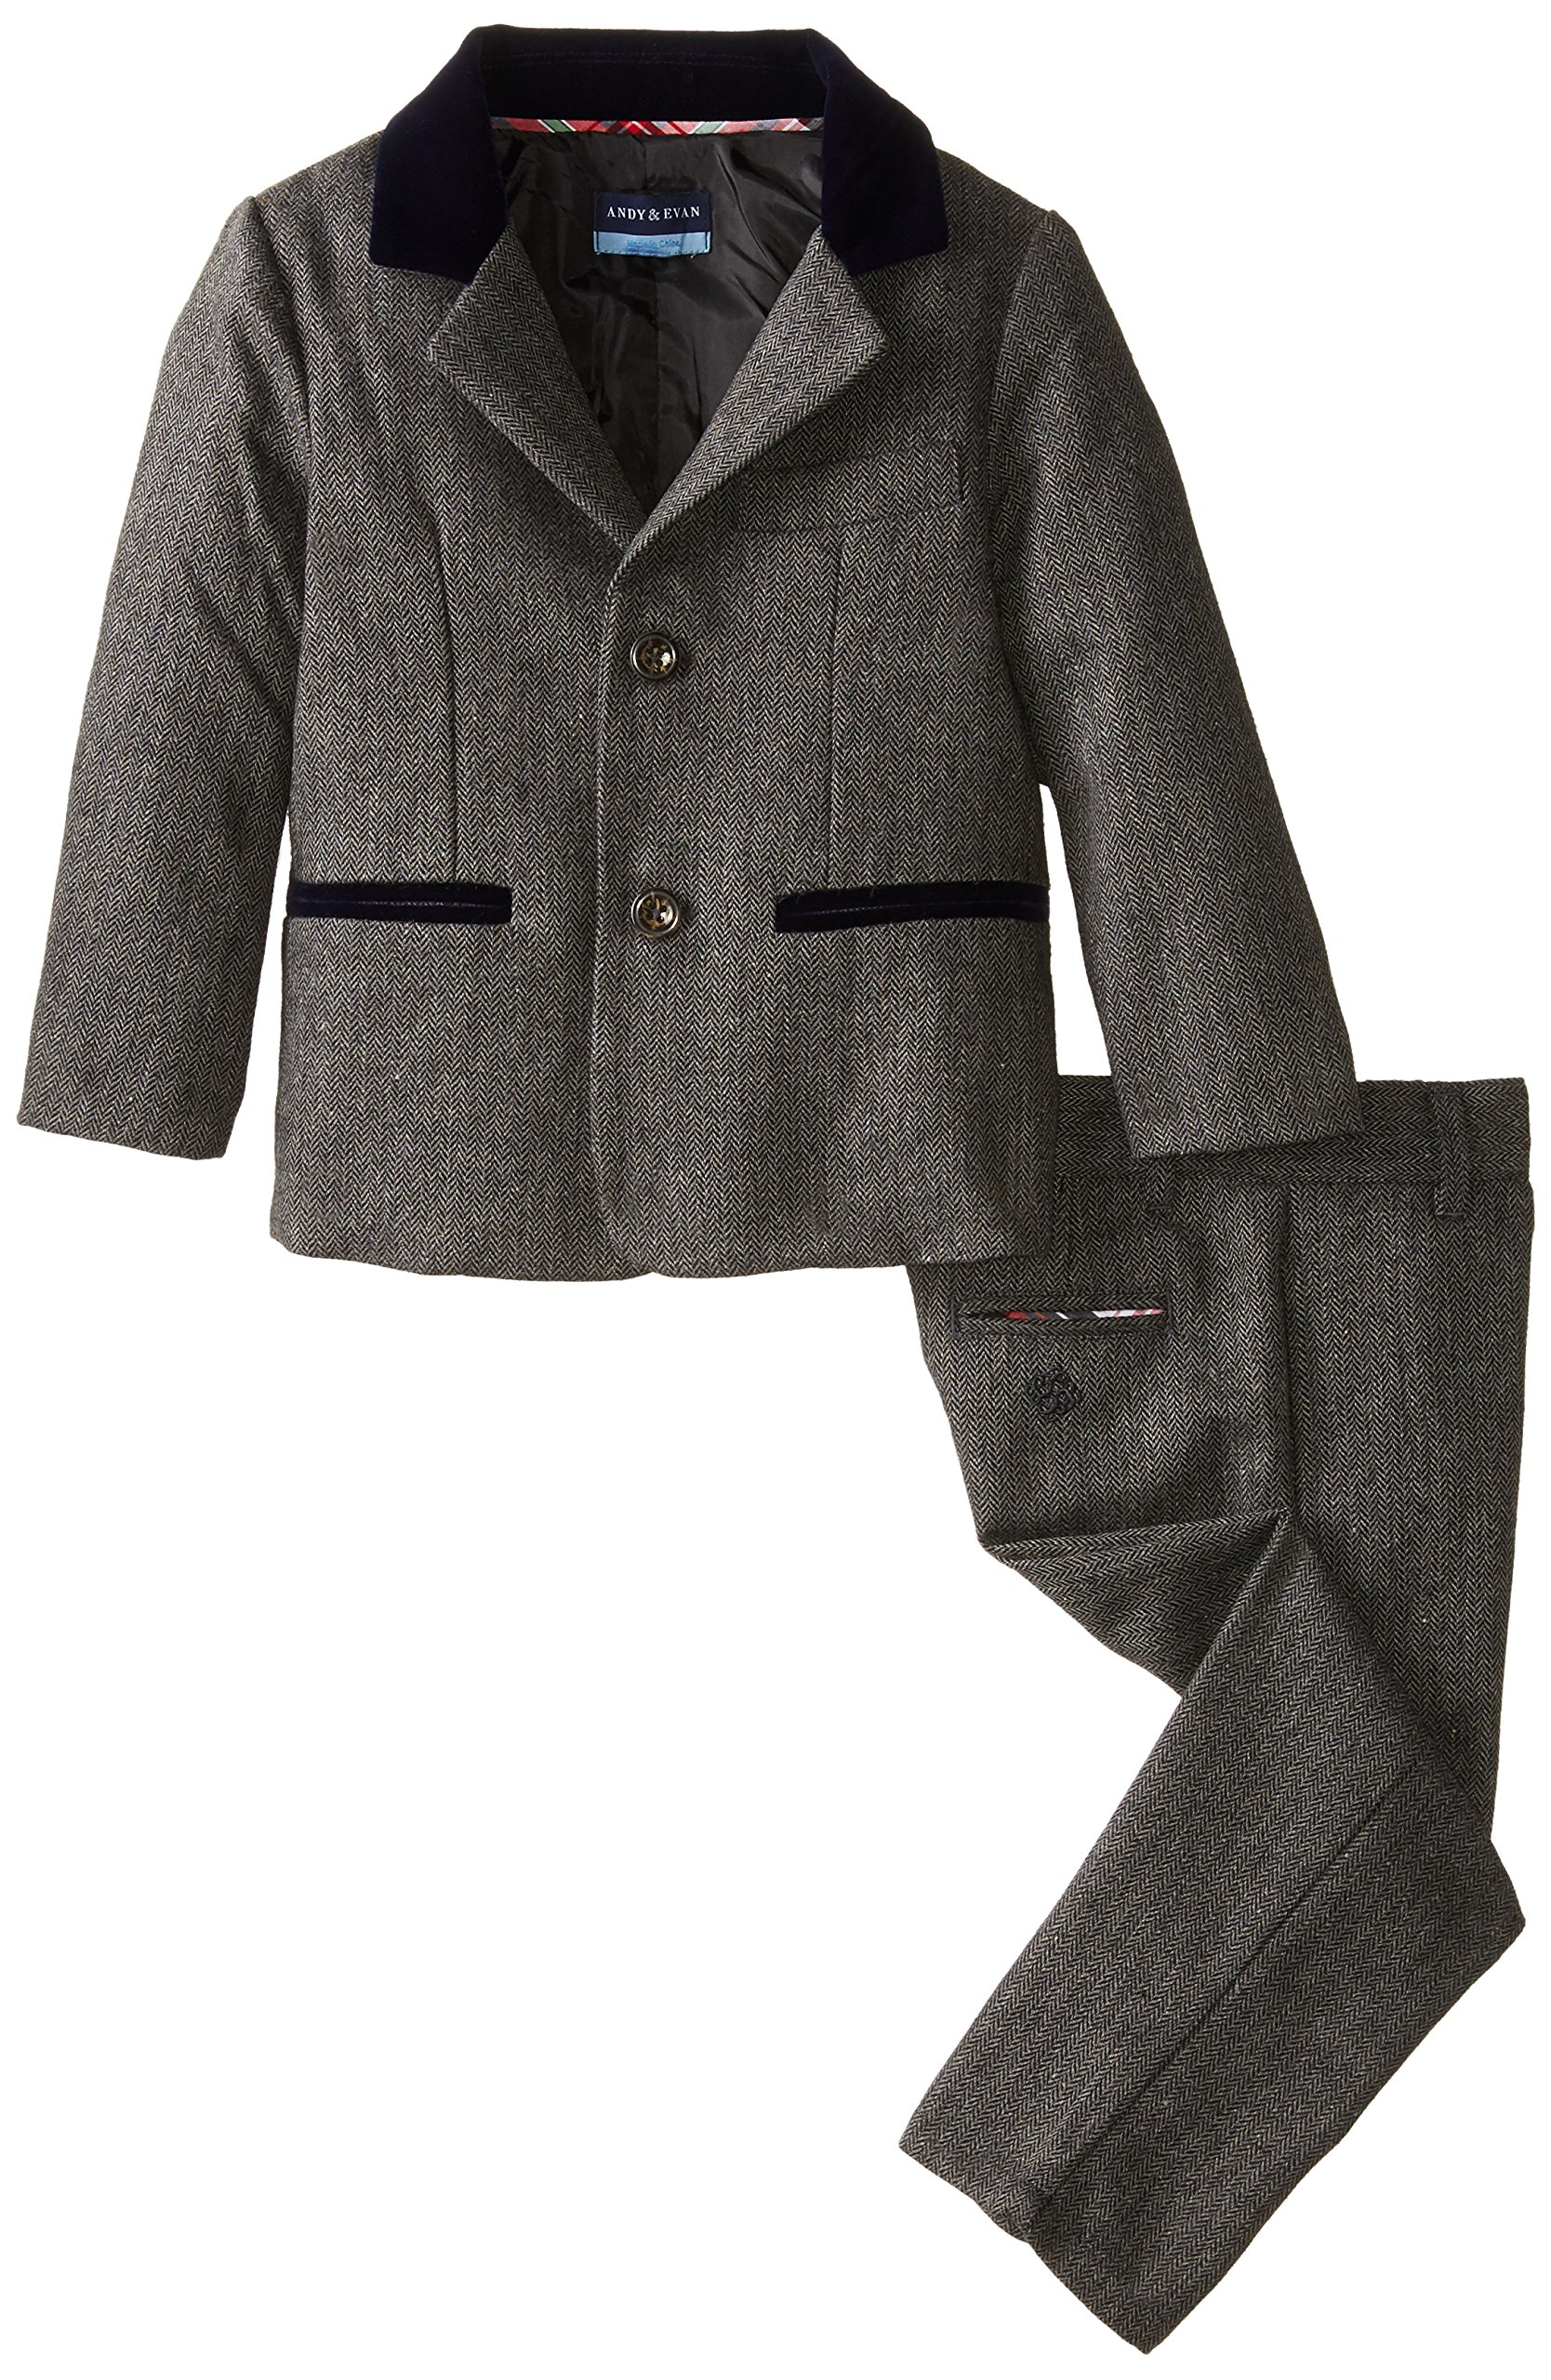 Andy & Evan Little Boys' Herringbone Suit Set, Black, 5 Years